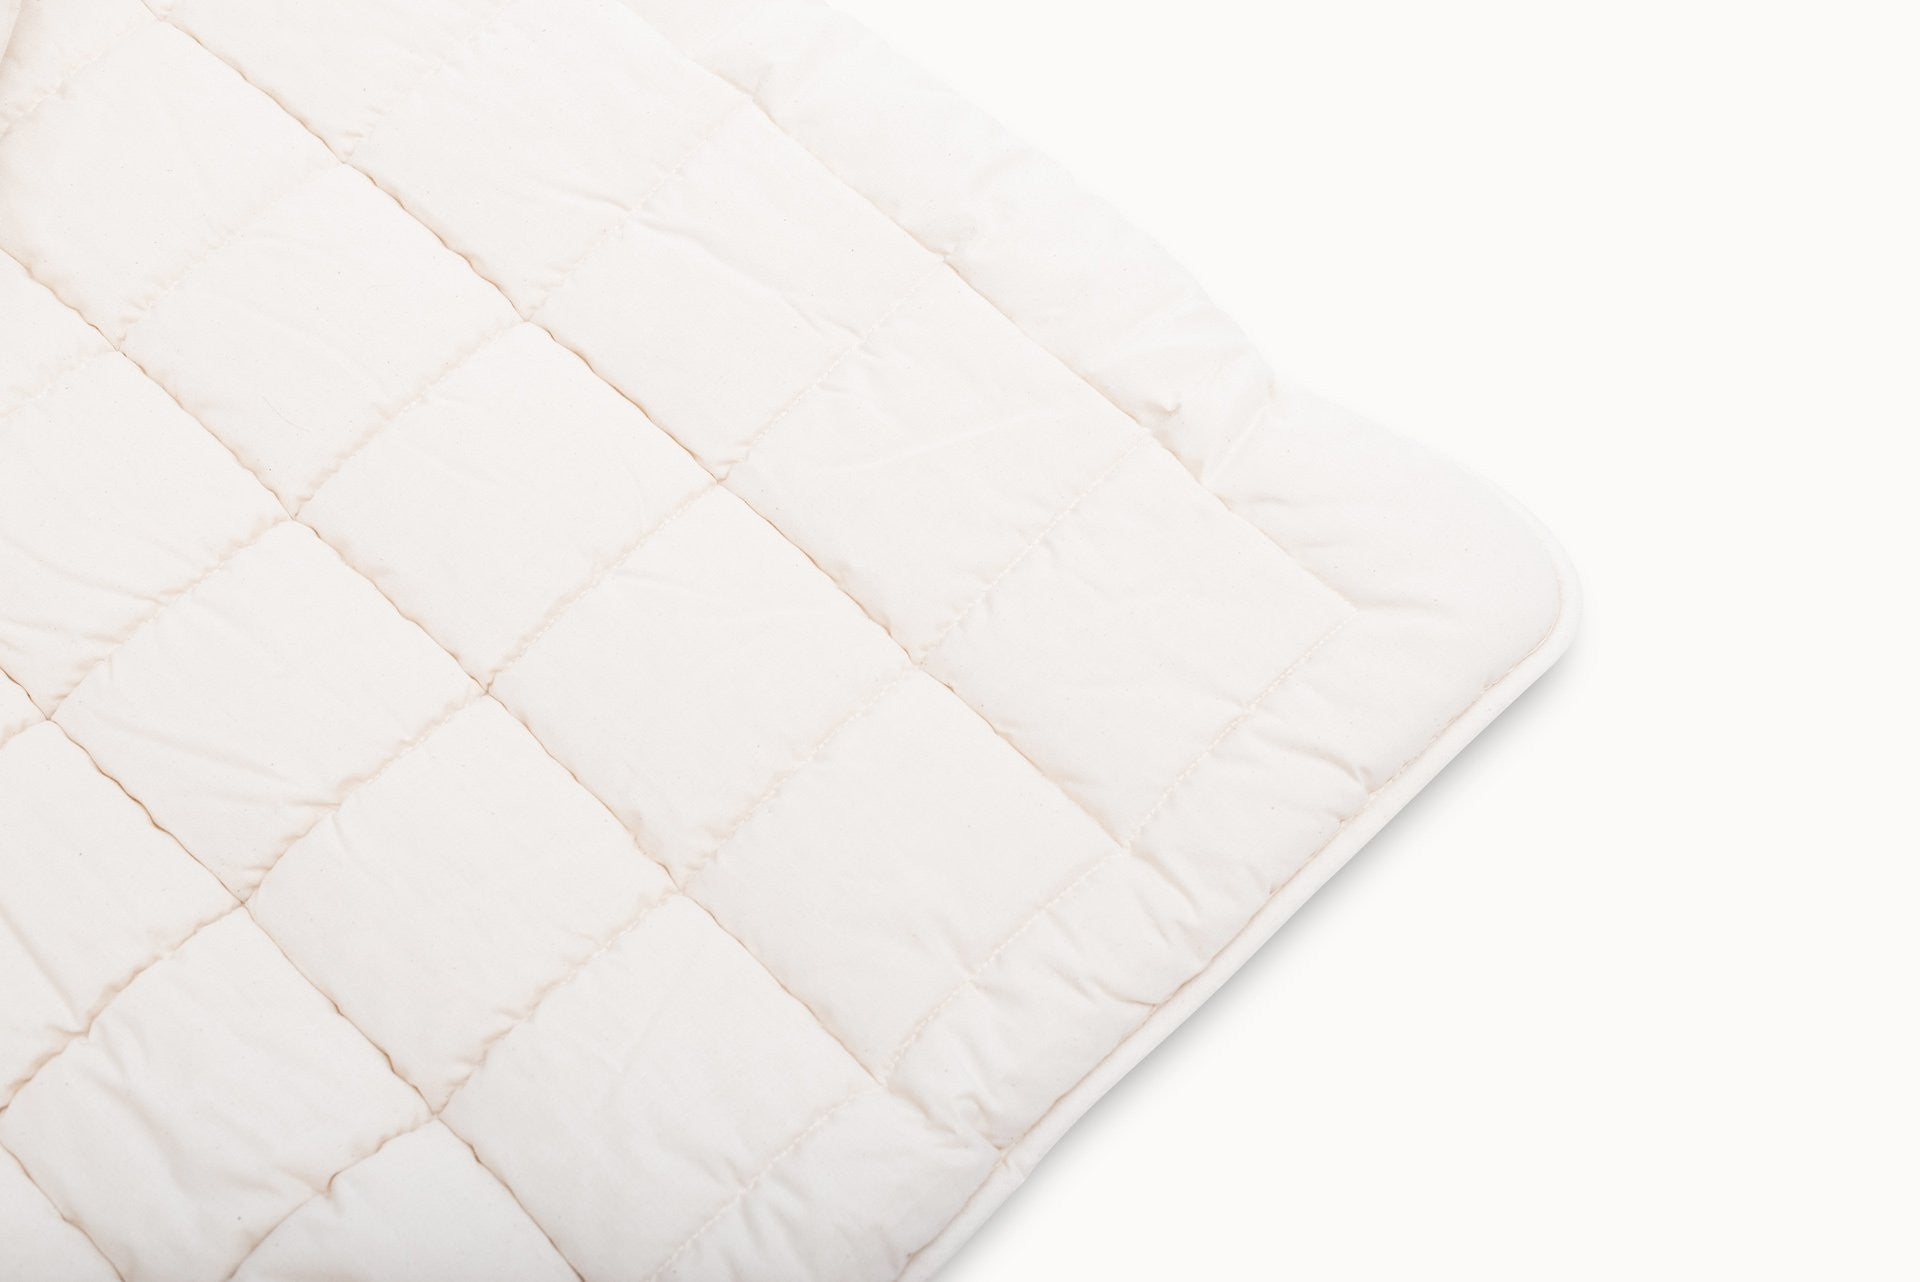 Bio-Wool Mattress Protector - Healthy Bedroom